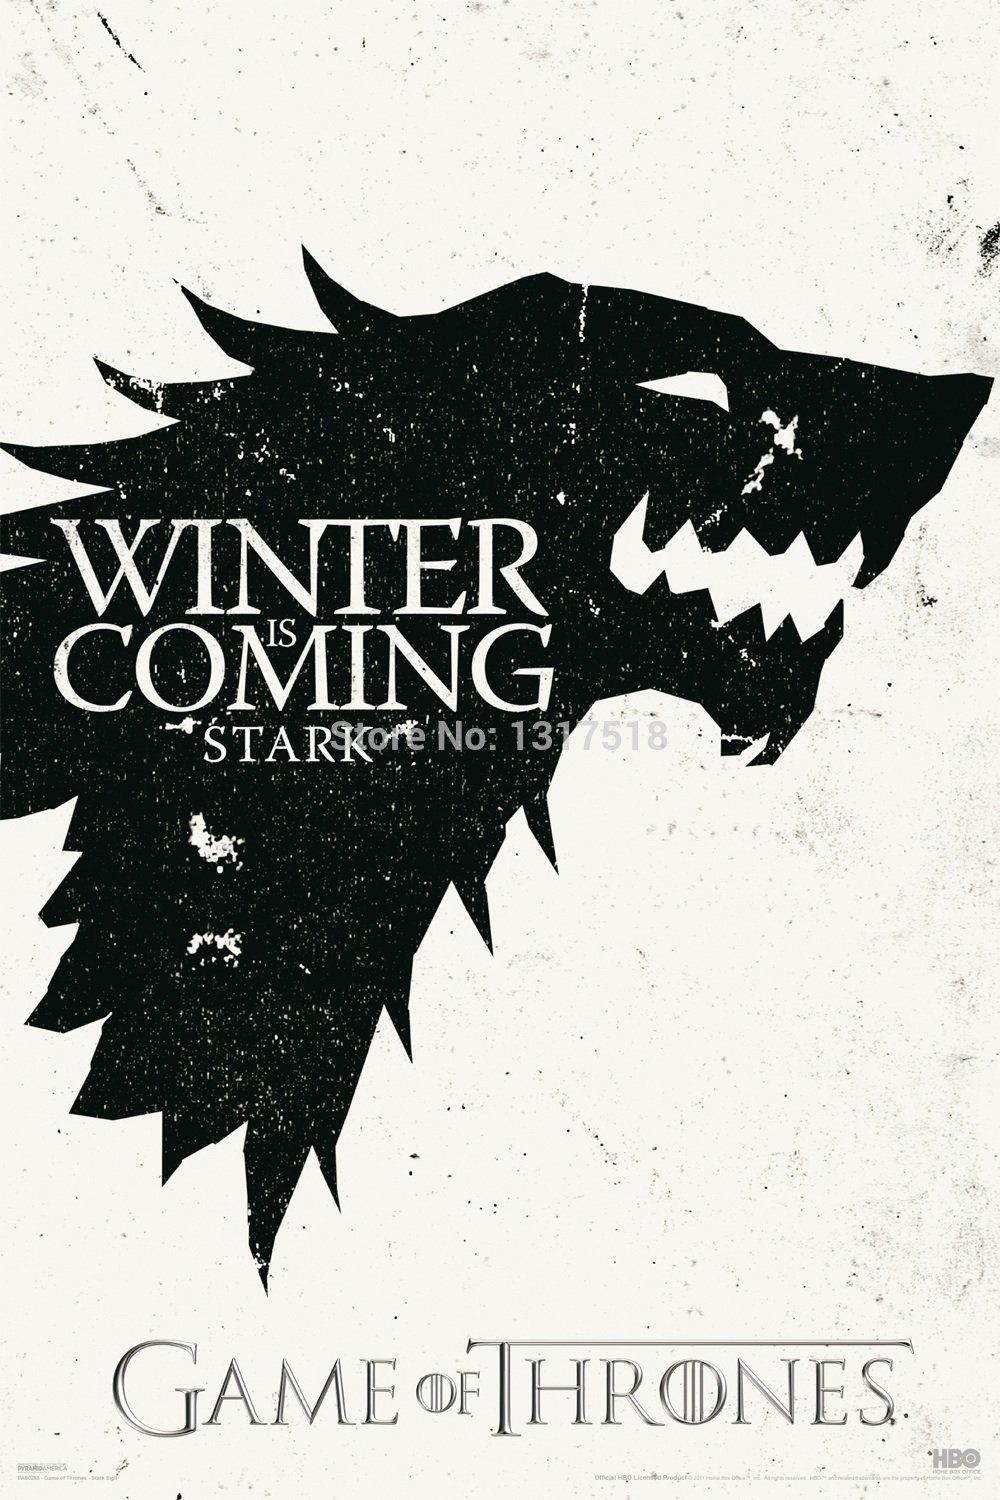 Game Of Thrones Stark Poster 27x40cm Only 8 99 Free Shipping Worldwide If You Like It Share It With With Images Game Of Thrones Poster Game Of Thrones Winter Stark Sigil